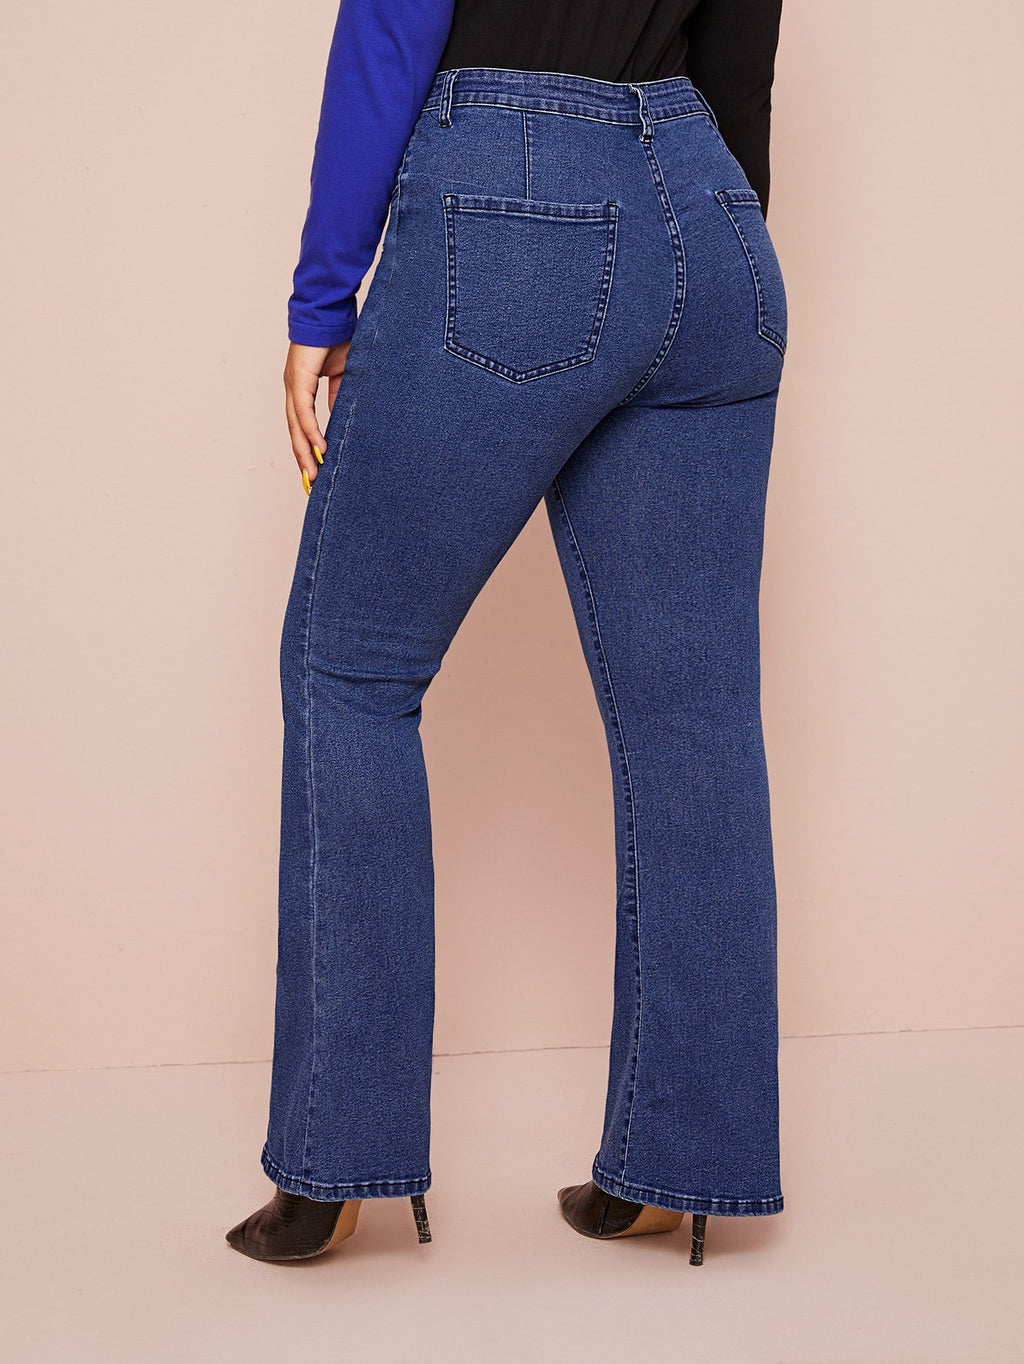 Plus Size Button Fly Flare Leg Jeans